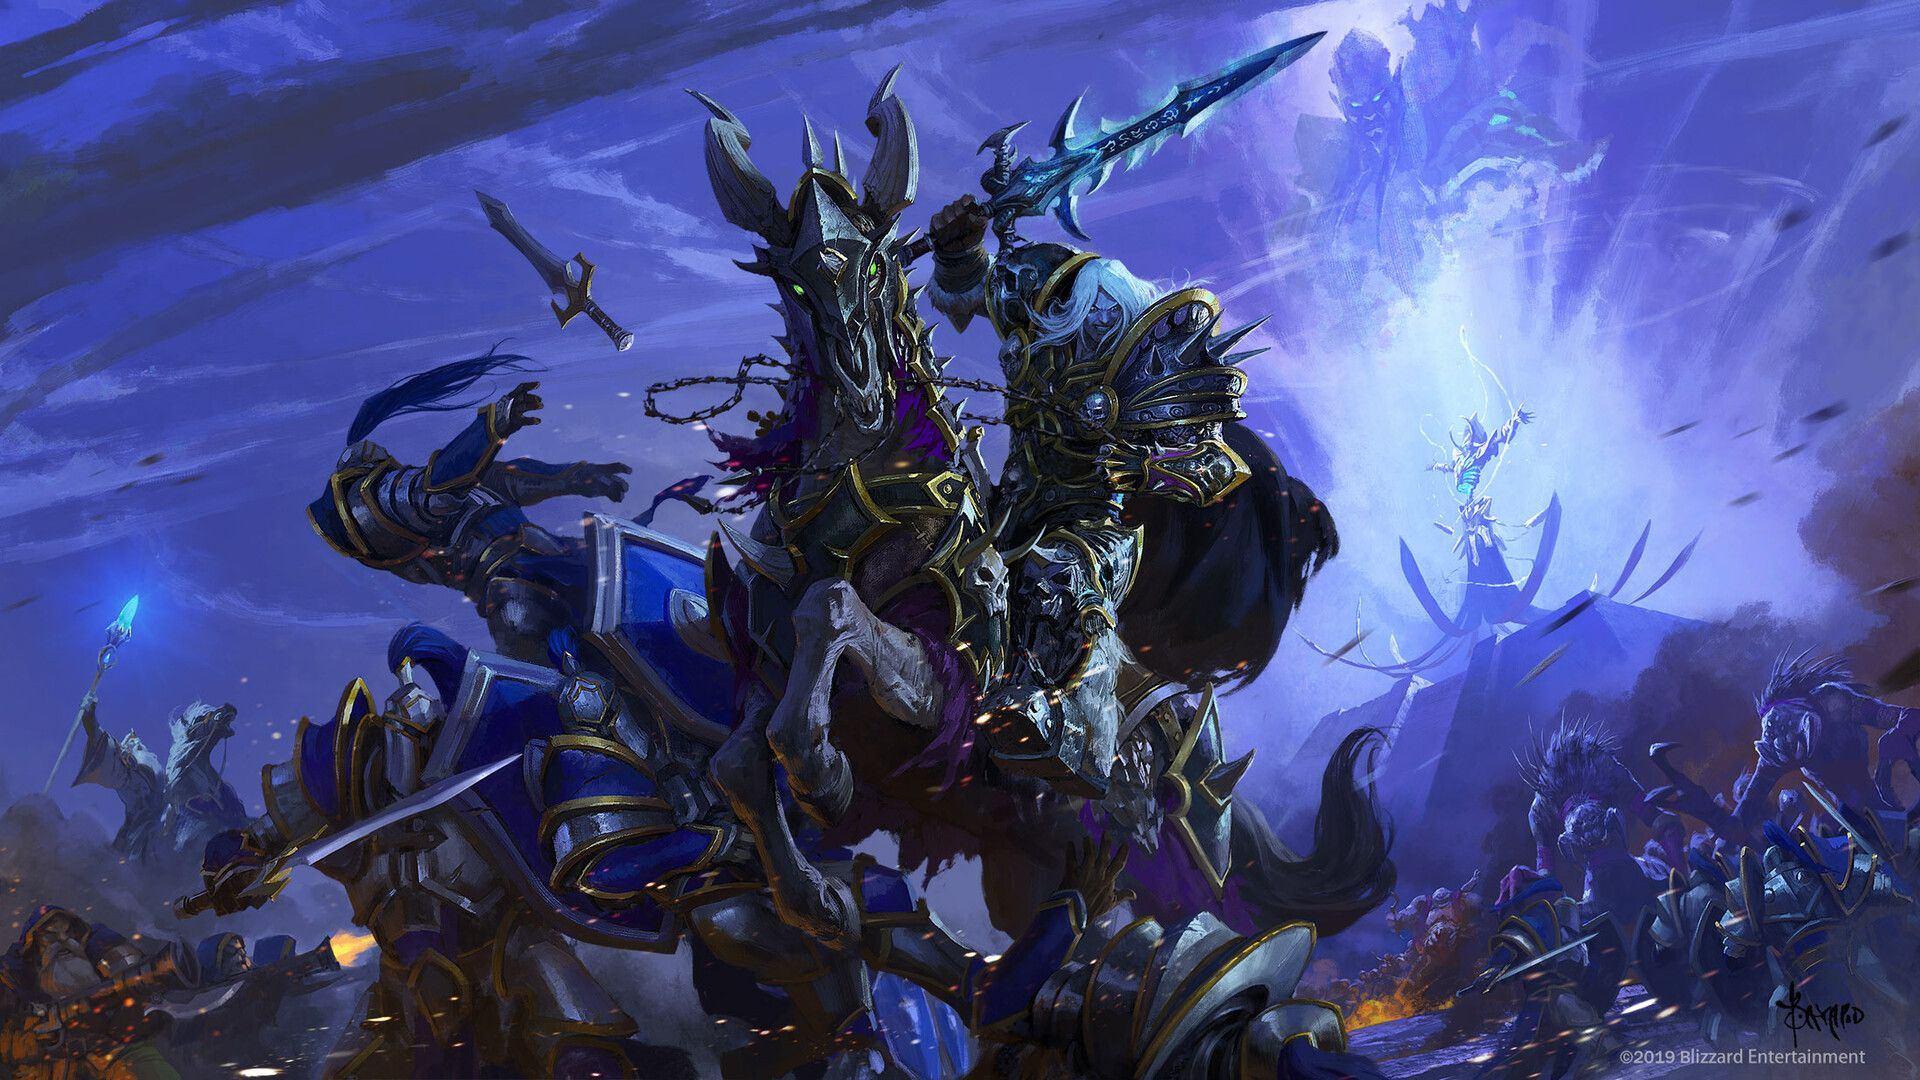 Arthas And Archimonde By Bayard Wukey Art I Did For Blizzard